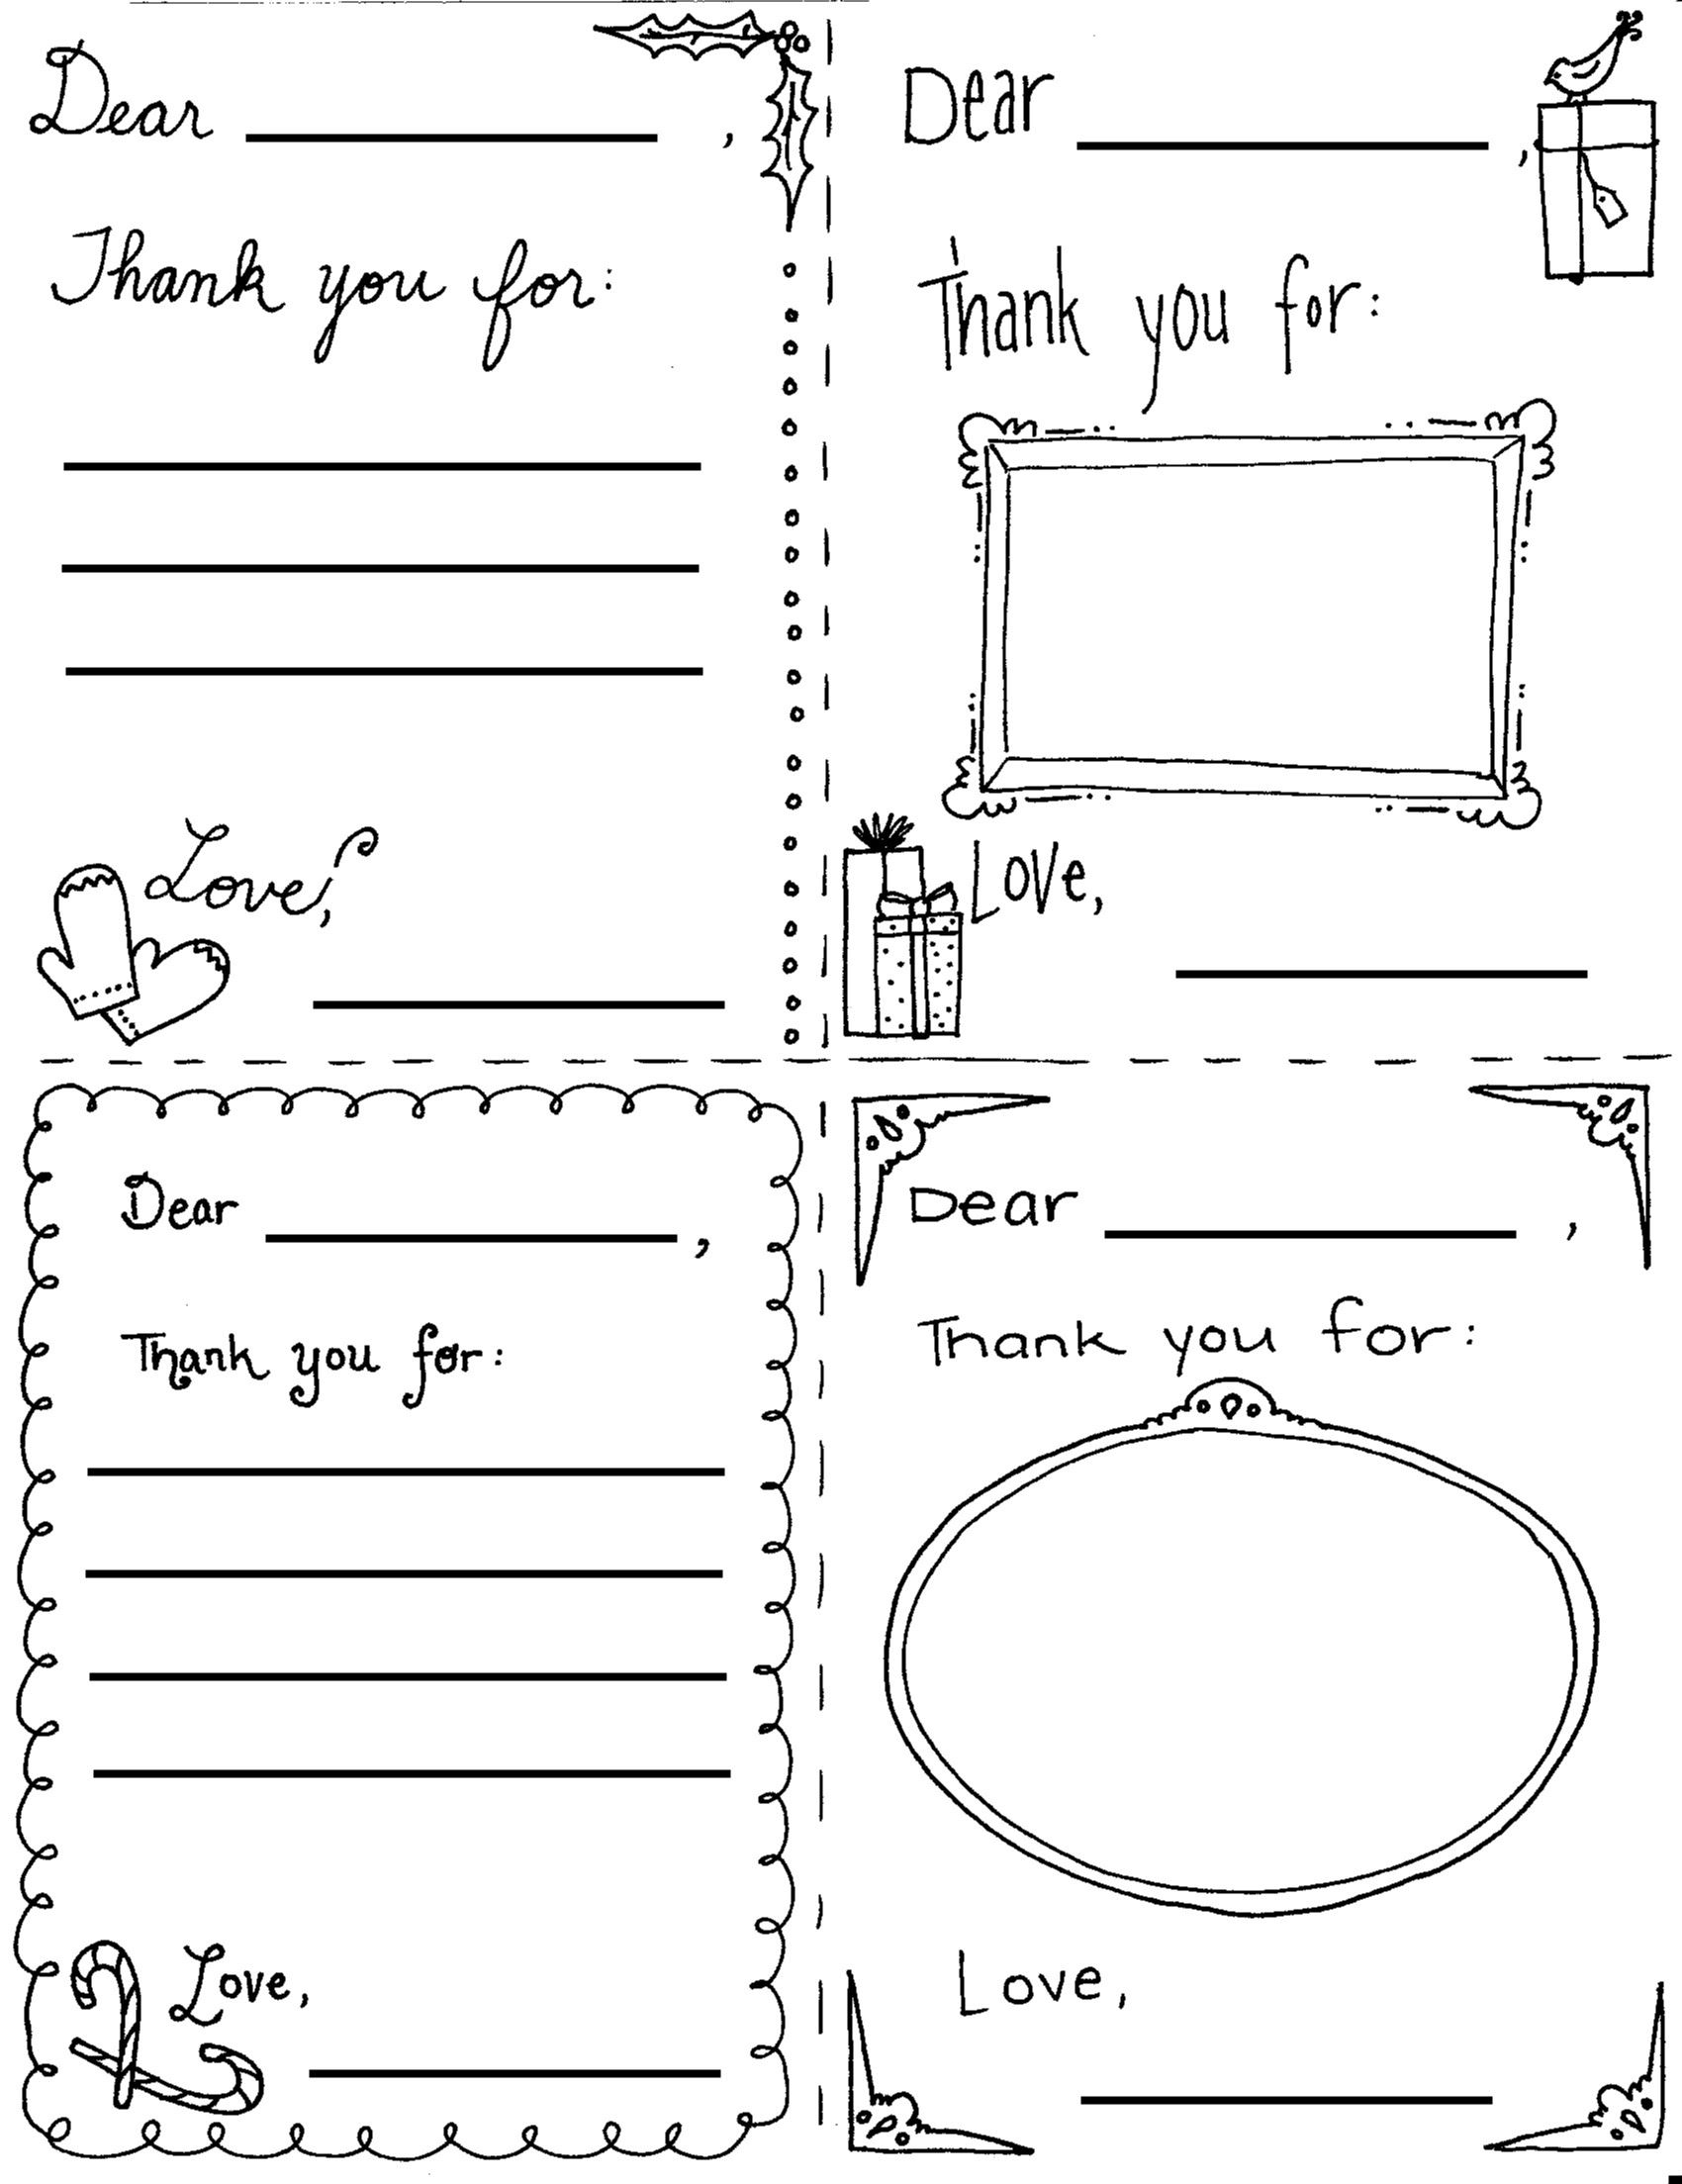 Printable Christmas Thank You Cards For Children